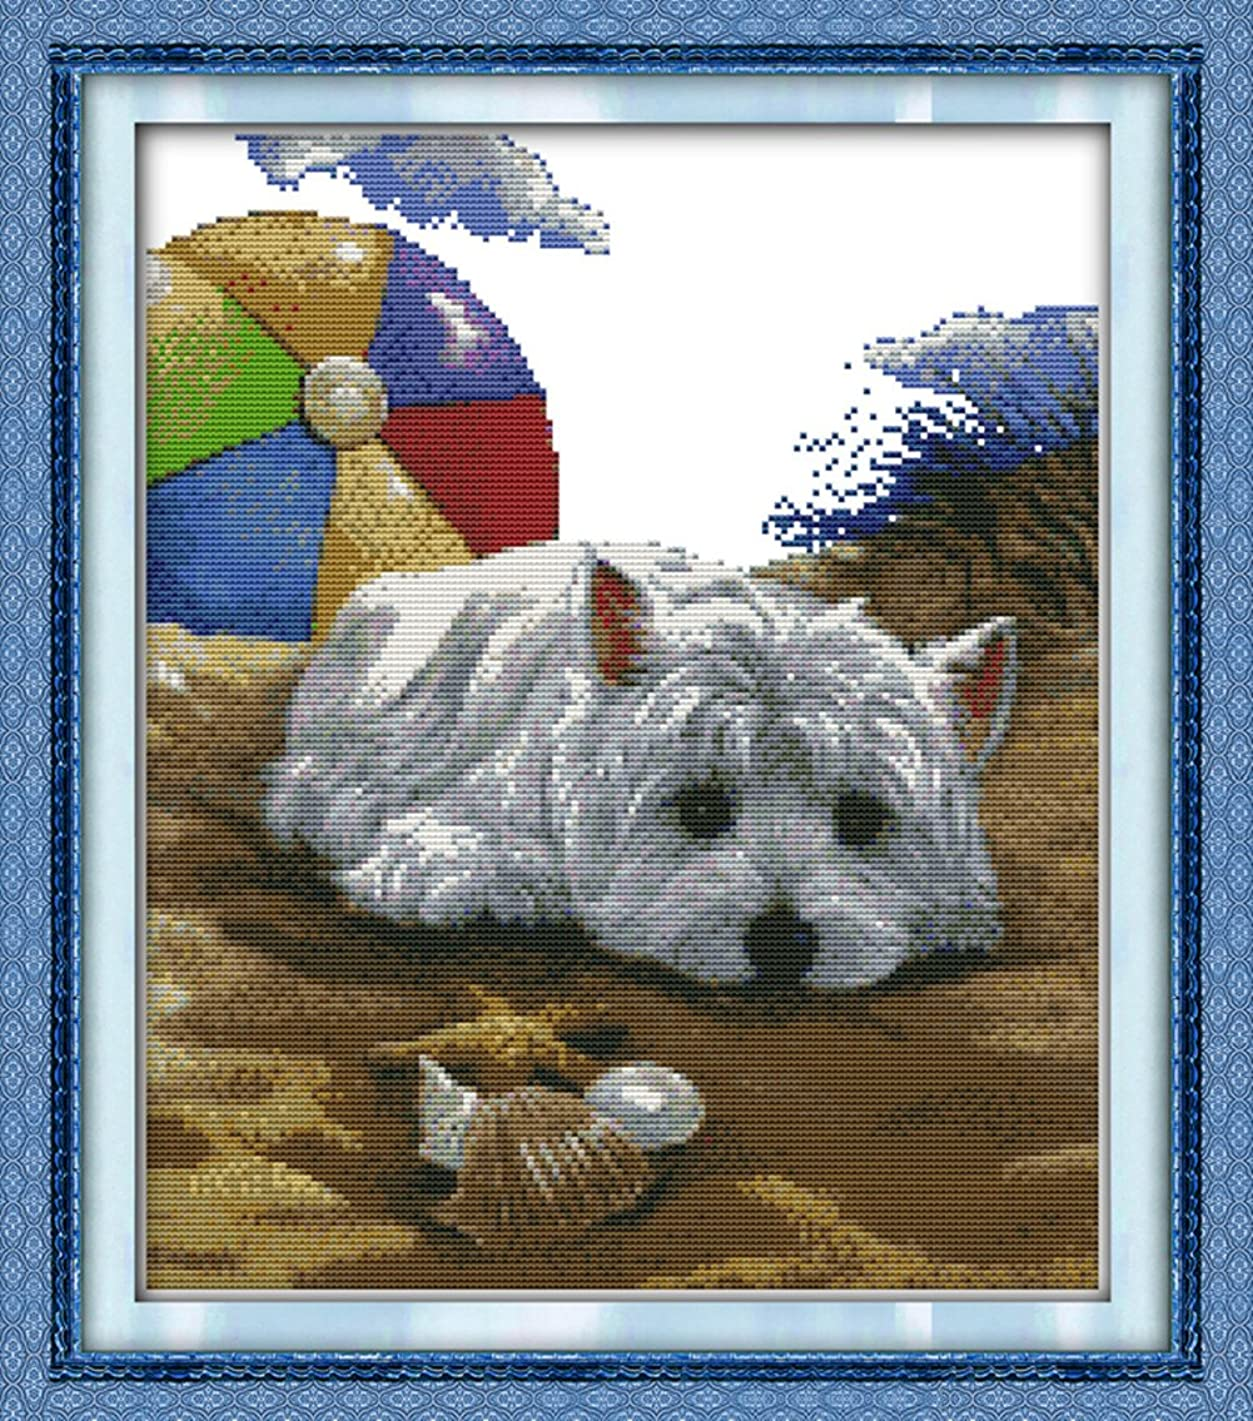 CaptainCrafts New DIY Art Stamped Cross Stitch Kit Pre-Printed Pattern Counted Embroidery Kits - Dog Missing (WHITE)